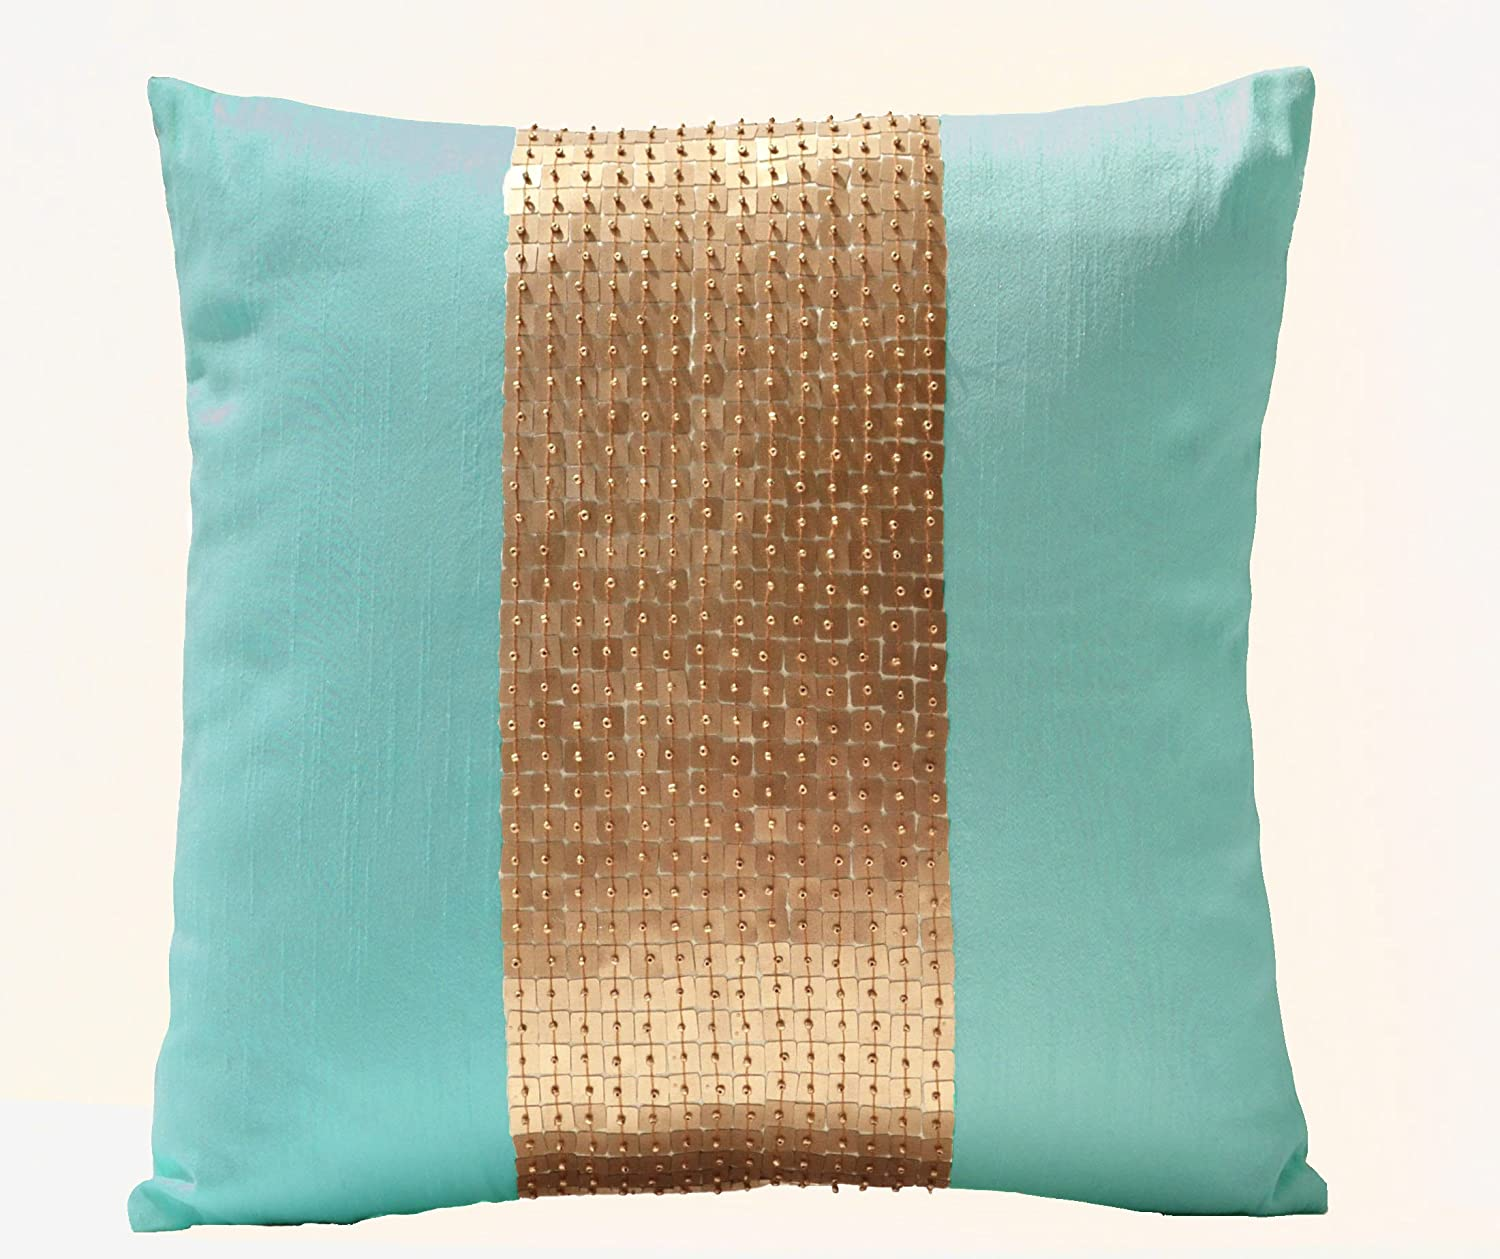 Brown and teal throw pillows - Amazon Com Amore Beaute Handmade Teal Pillow Covers Teal Gold Color Block In Silk And Sequin Decorative Throw Pillow Covers With Sequin And Bead